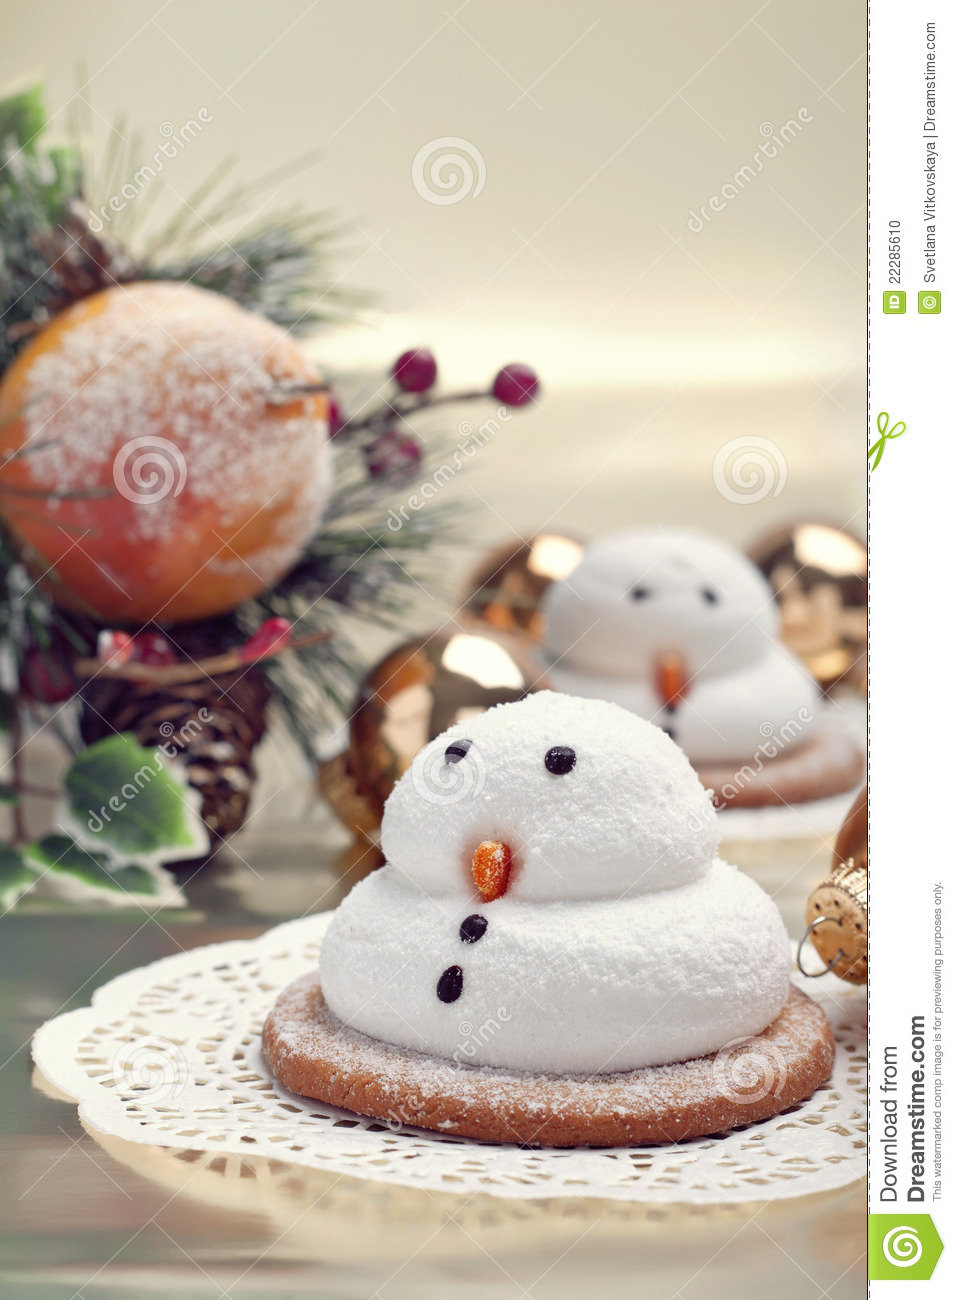 Two Marshmallow Snowmen Biscuits Stock Photo Image Of White Sweet